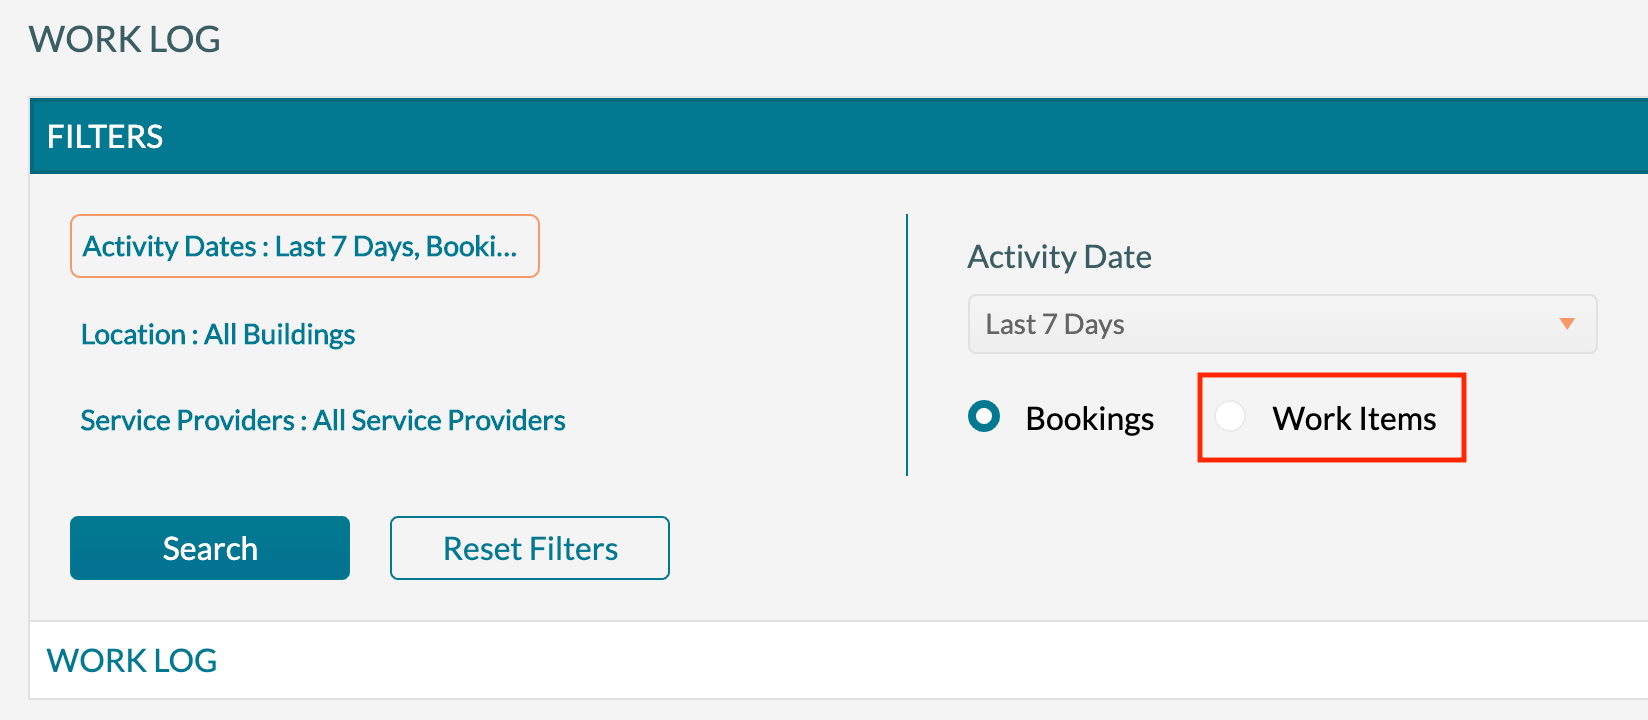 Work Log - Filter for work items